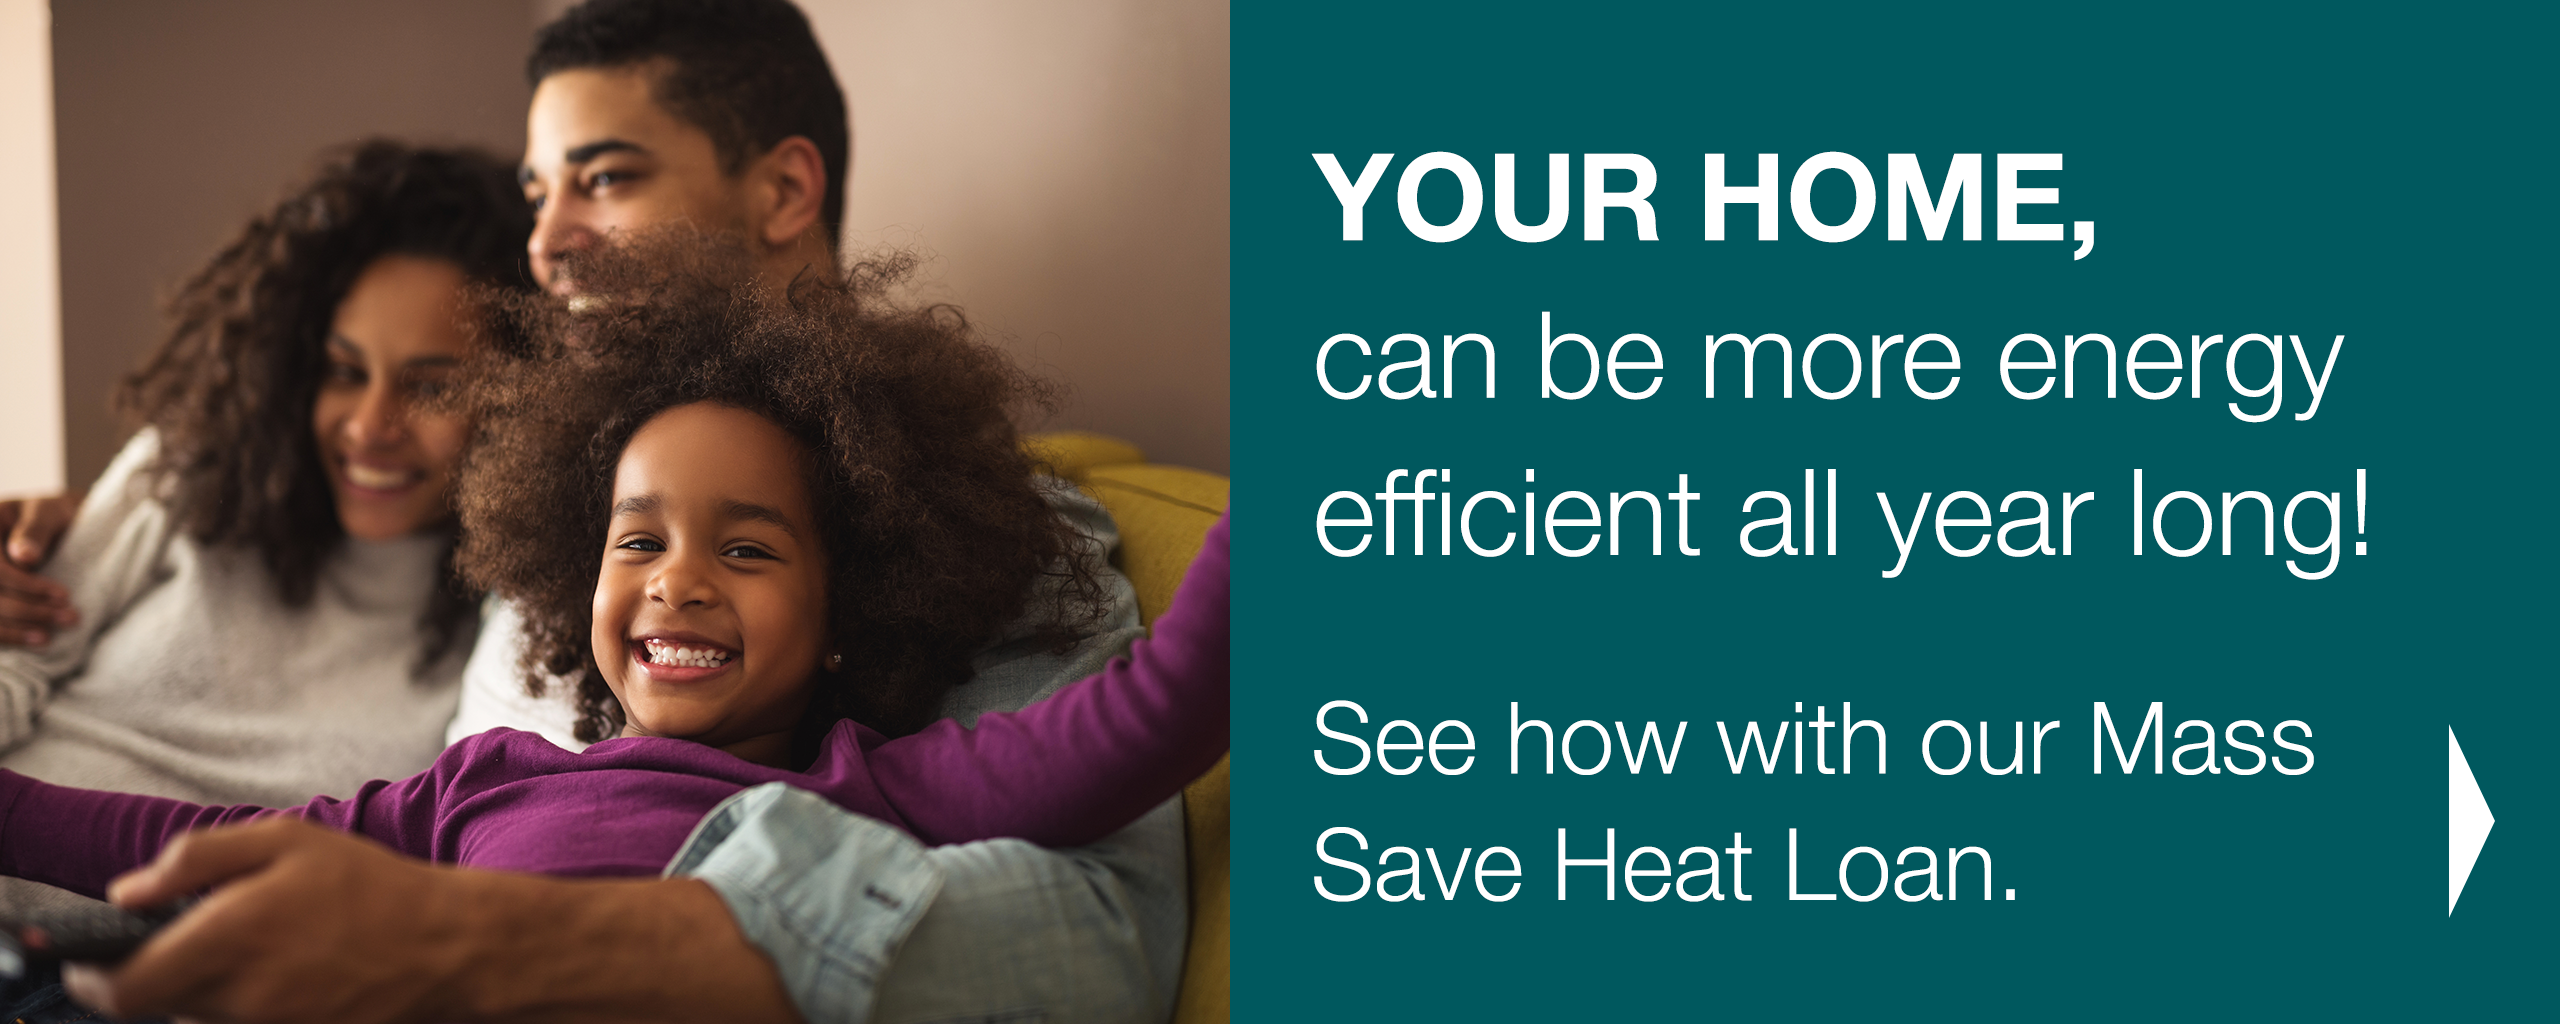 YOUR HOME,  can be more energy efficient all year long!  See how with our Mass Save Heat Loan.